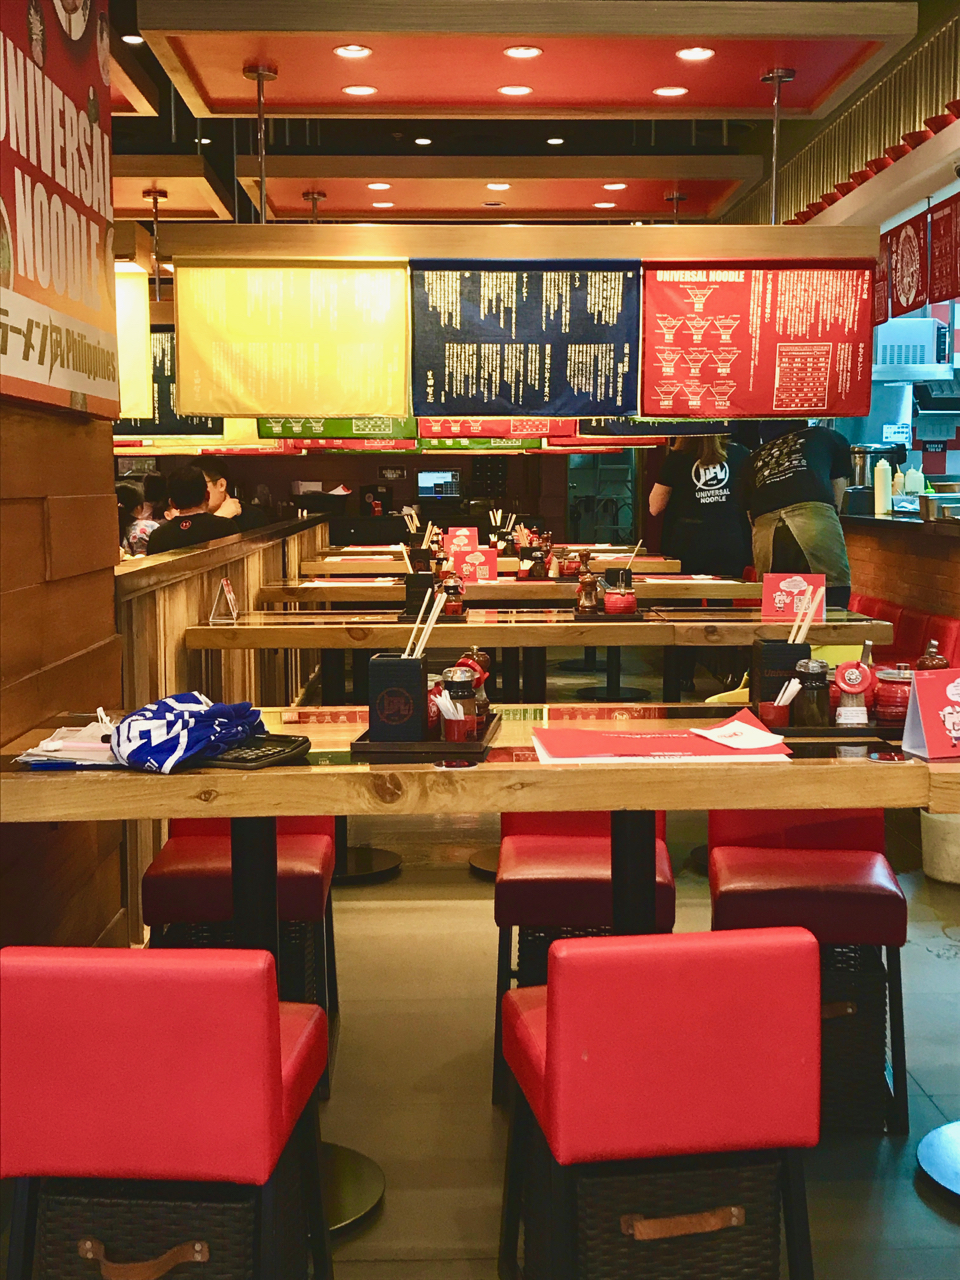 - We have a Ramen Nagi we usually frequent but the interiors aren't up to par with the new location at Galleria. It has all the legit Japanese feels.